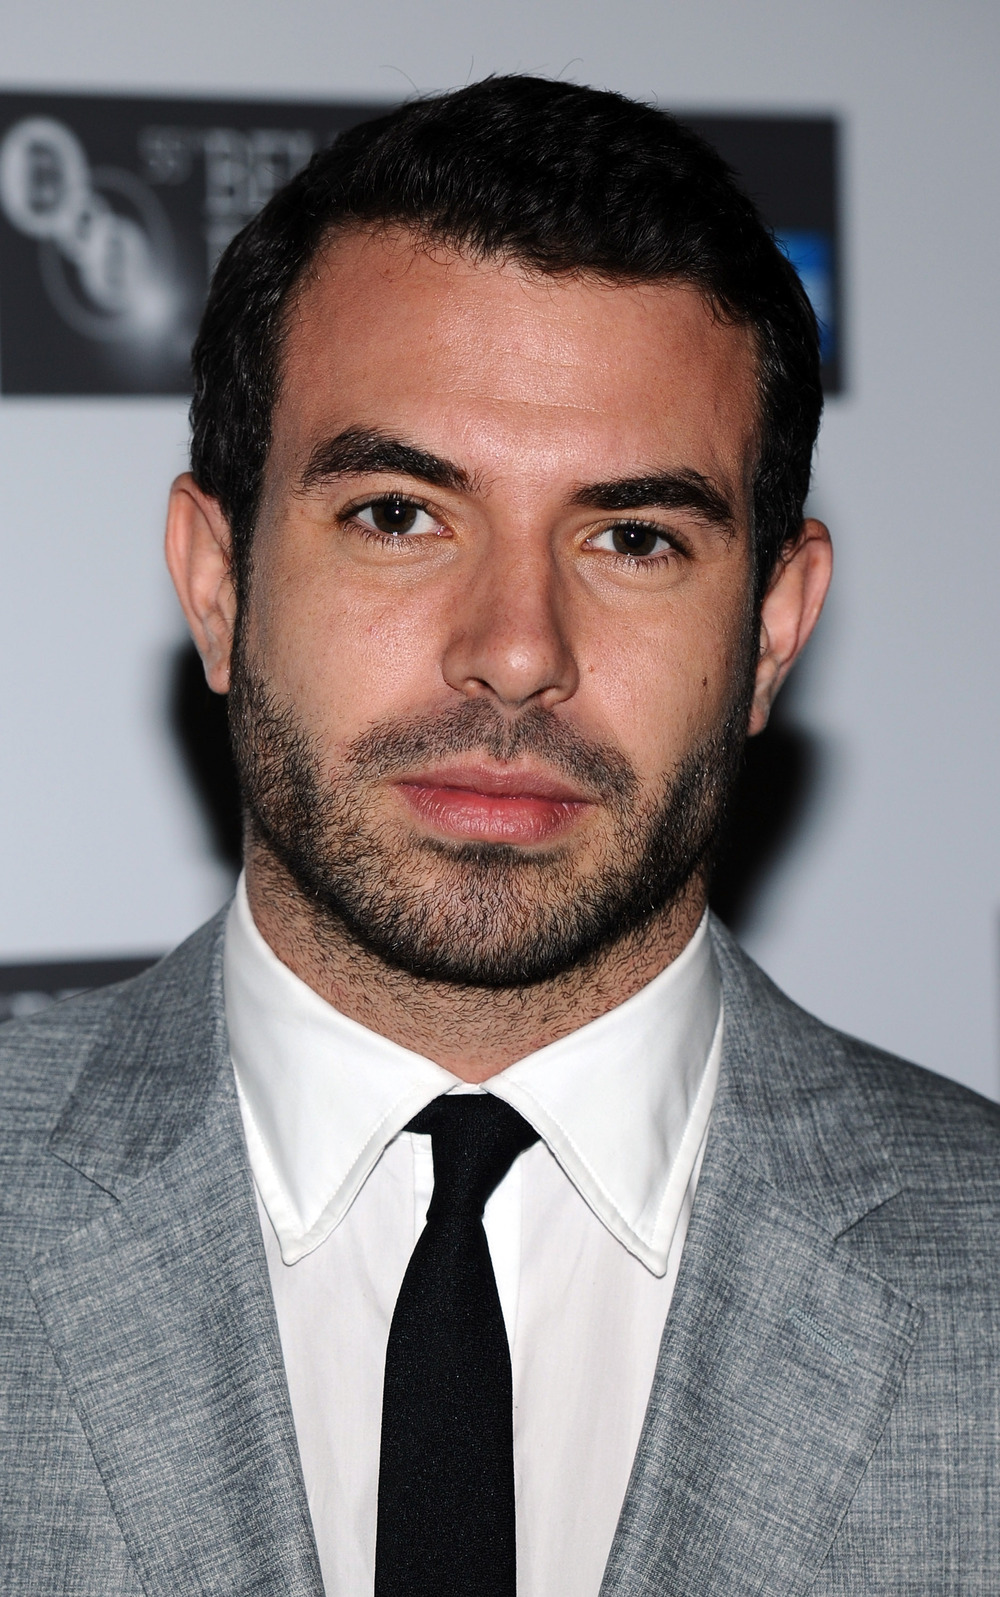 Does Downton Abbey's Tom Cullen Have a Girlfriend?